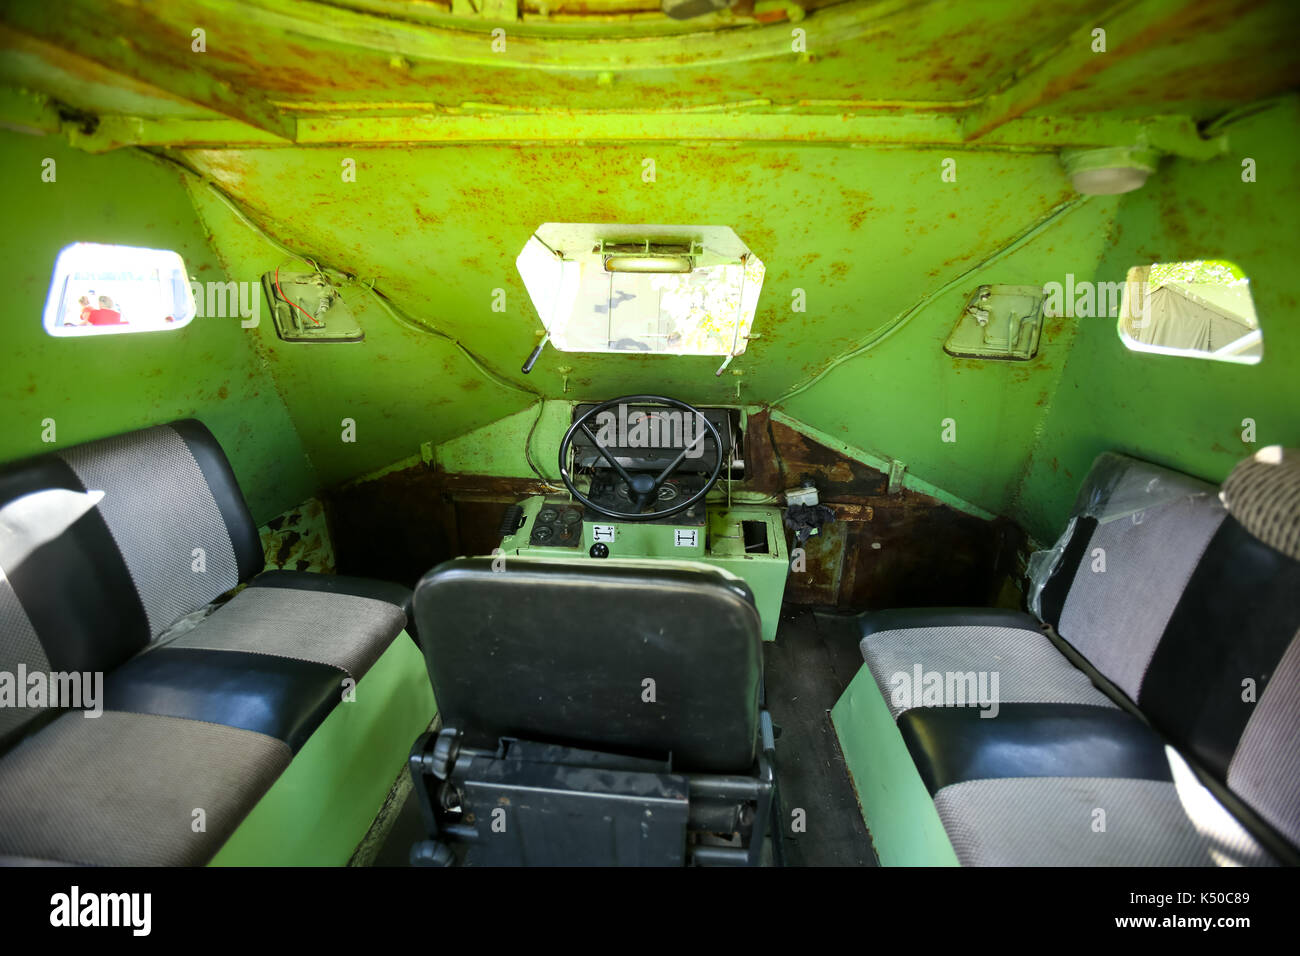 ZAGREB, CROATIA - MAY 28, 2017 : Croatian engineering anti terrorist vehicle from inside exposed on the 26th anniversary of the formation of the Croat - Stock Image